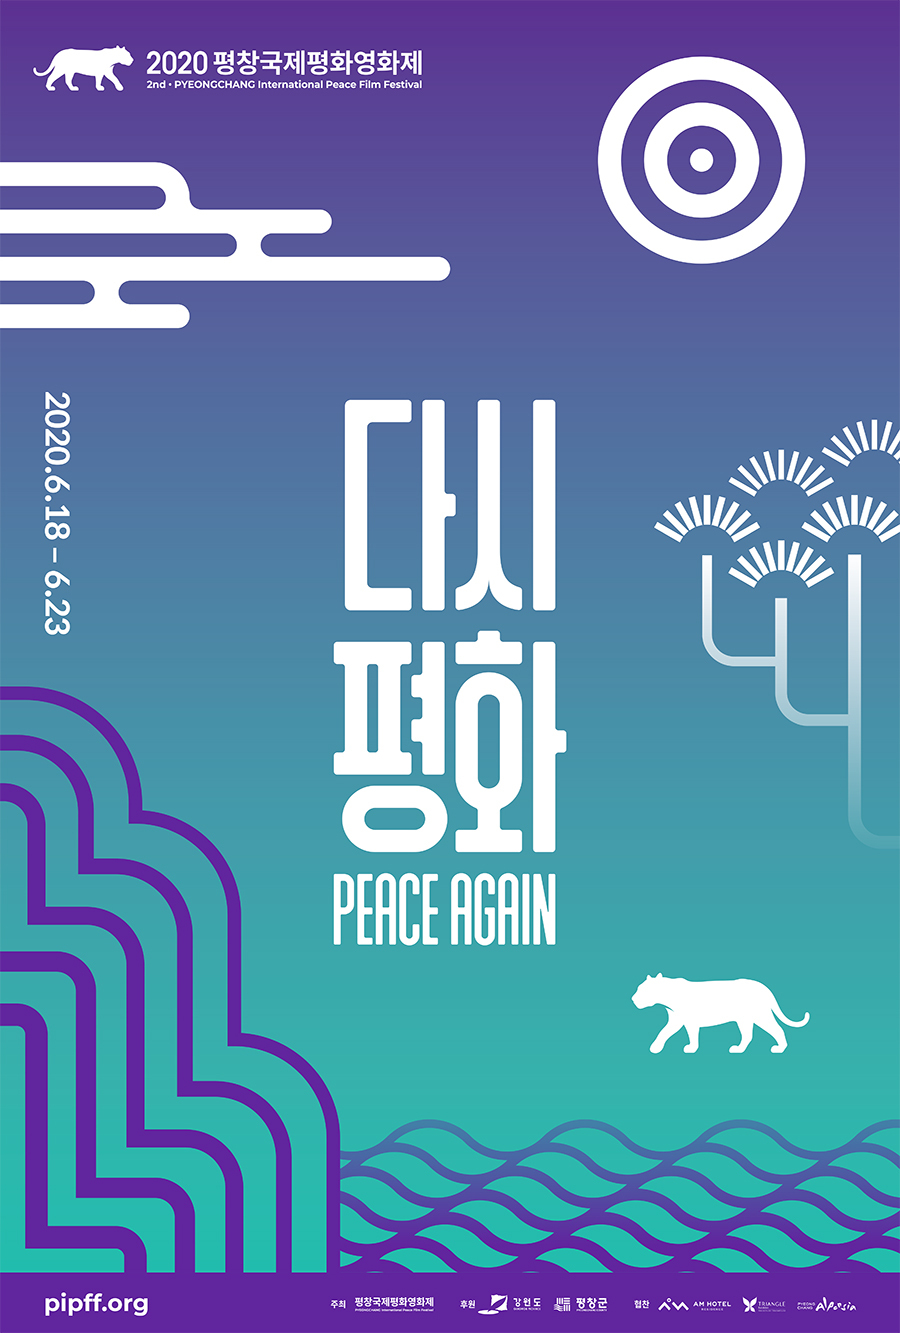 The 2nd Pyeongchang International Peace Film Festival poster (PIPFF)